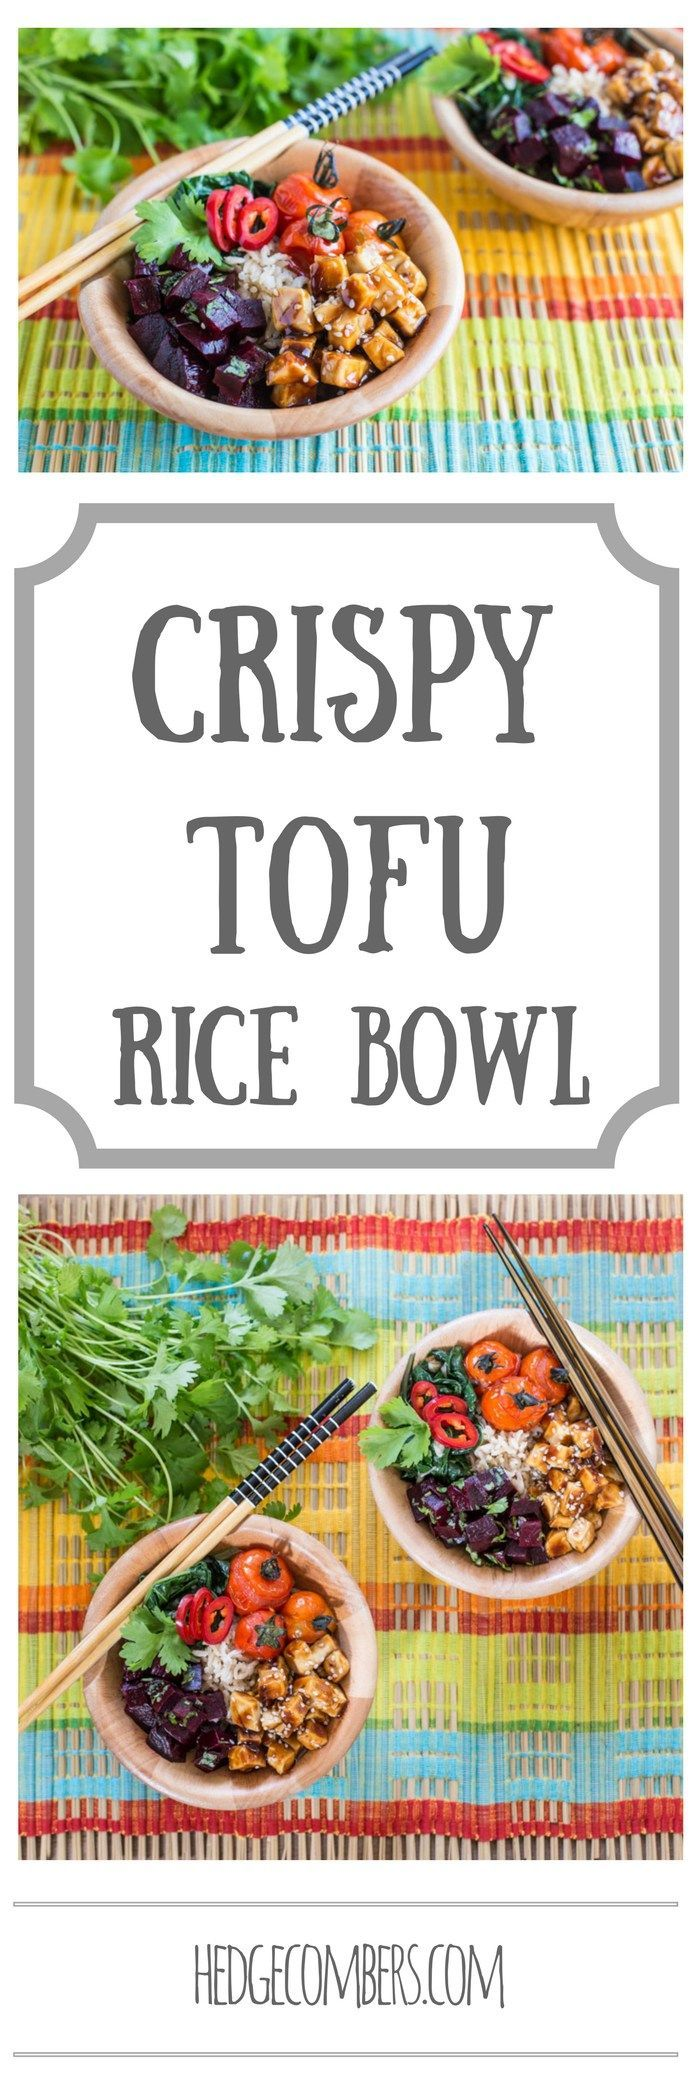 I got right outside my foodie comfort zone with this Crispy Tofu Rice Bowl for #NationalRiceWeek! | The Hedgecombers @lovericeorg